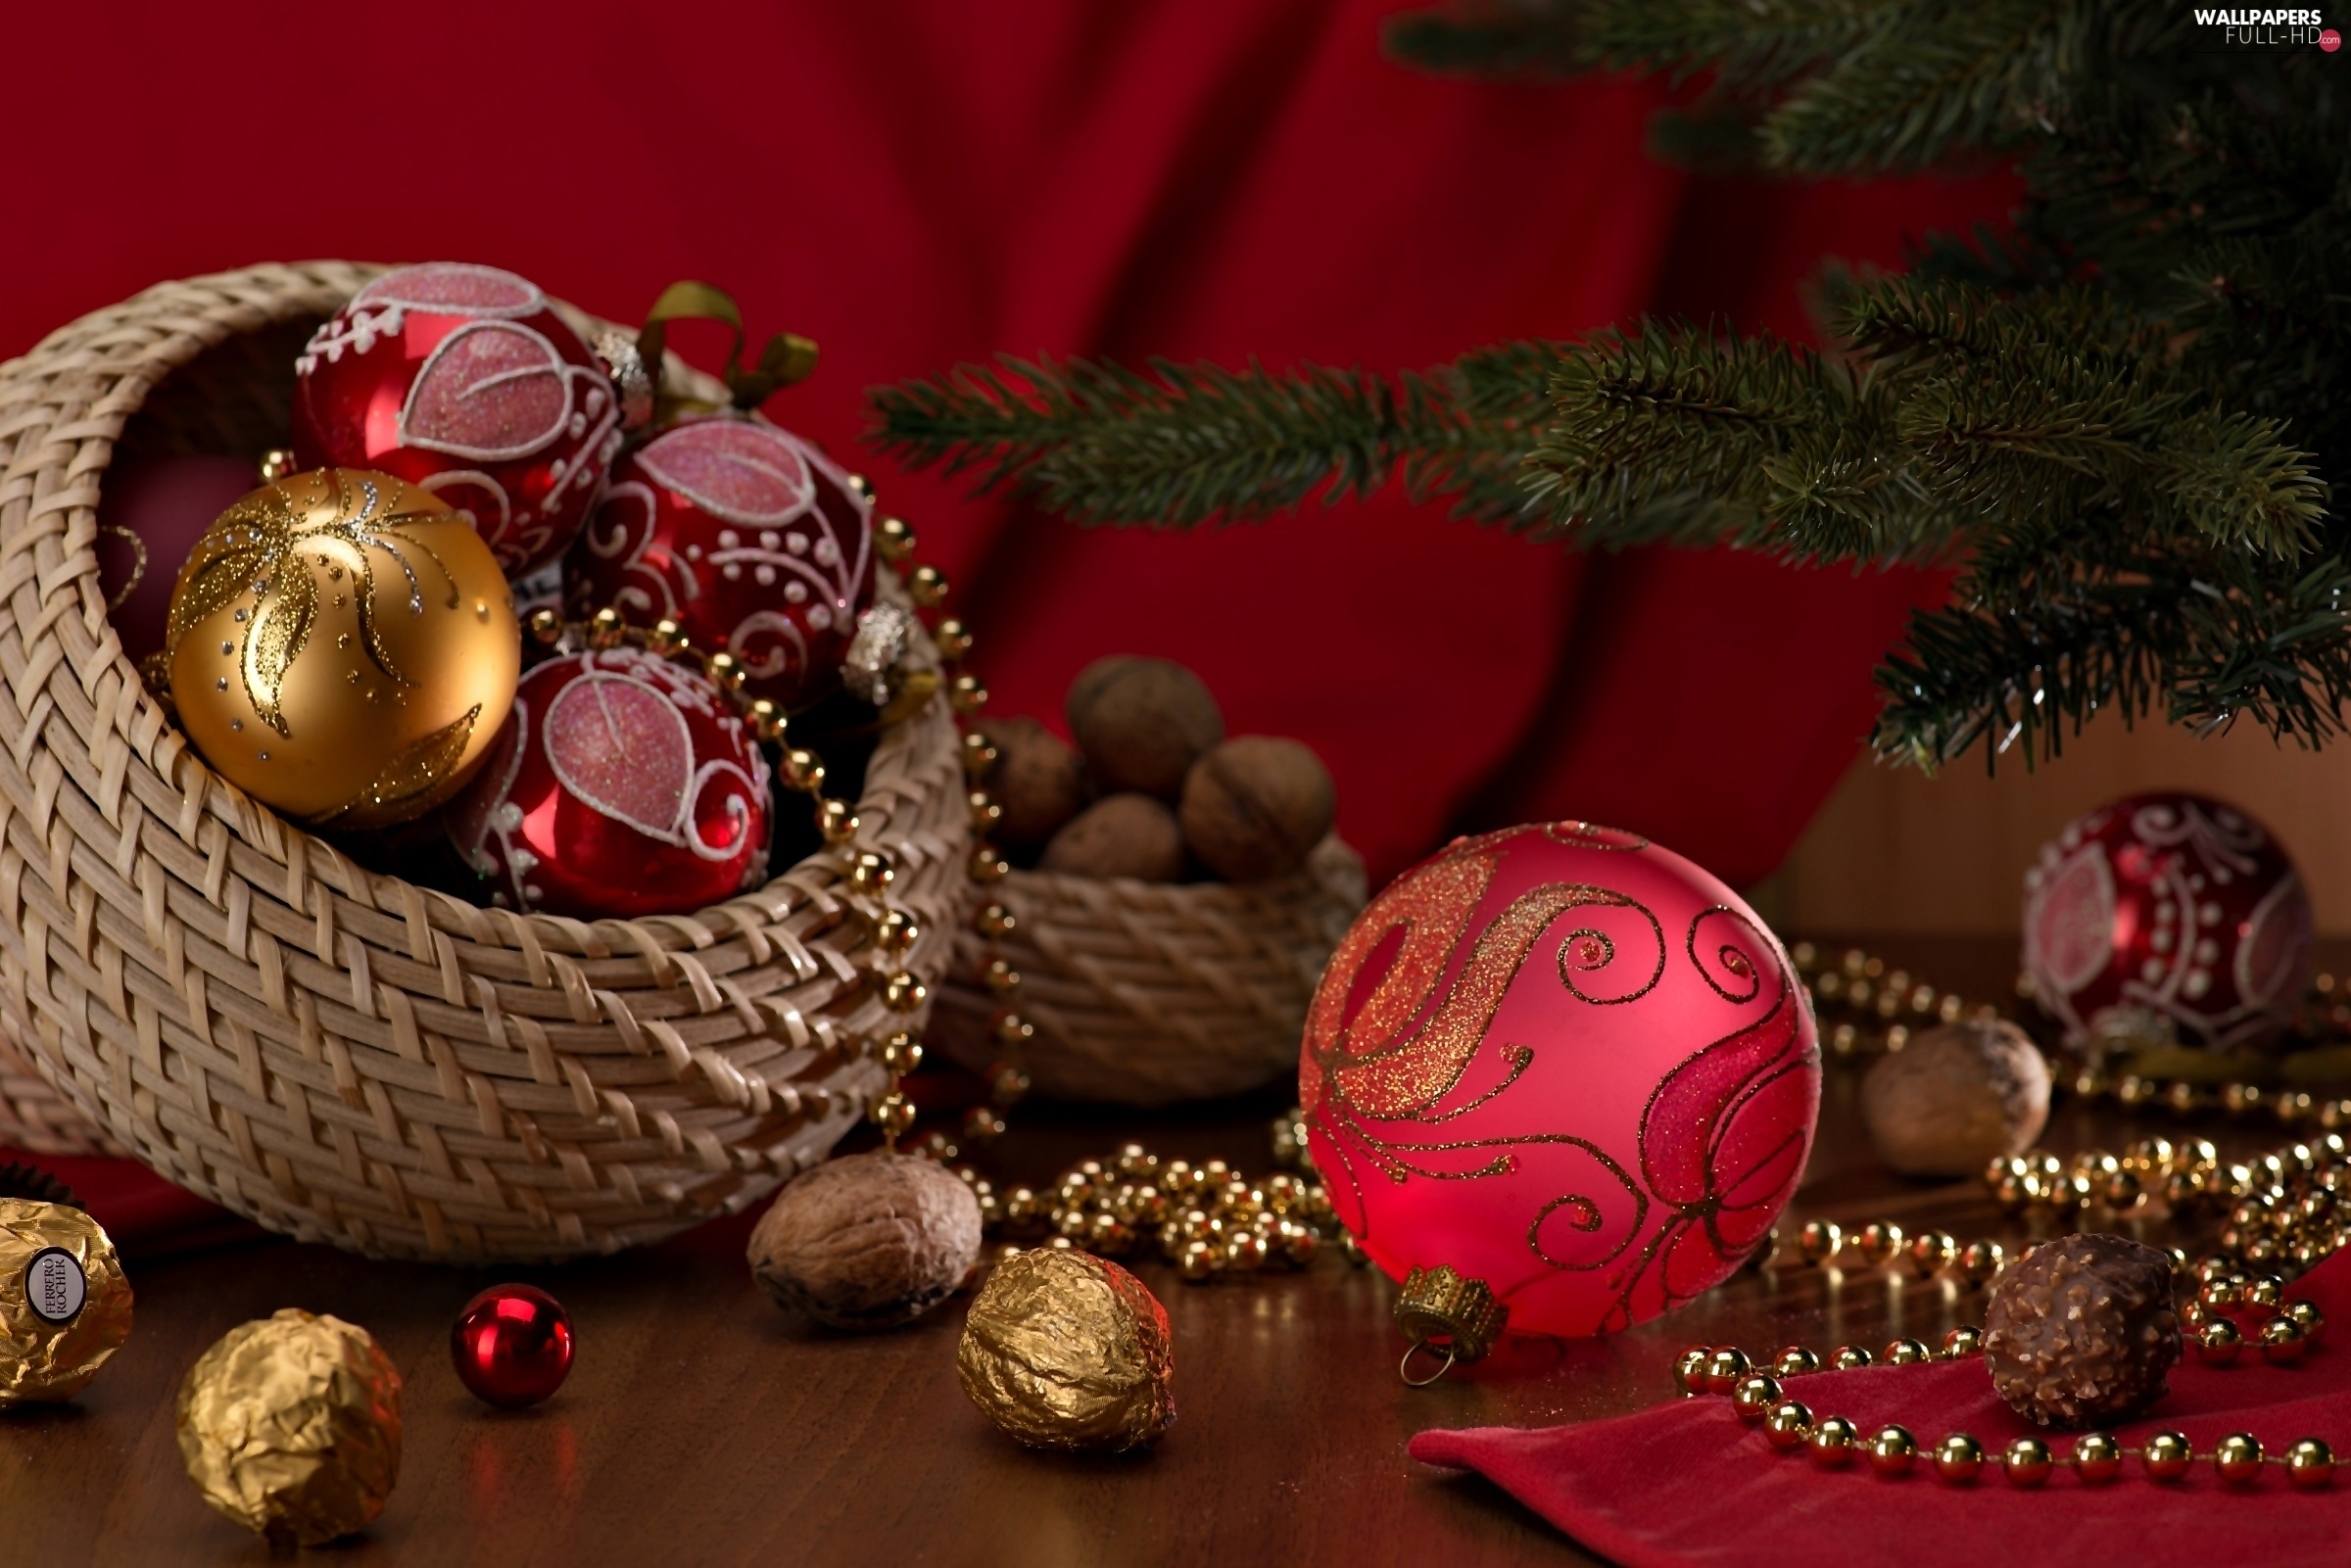 christmas, christmas tree, basket, baubles